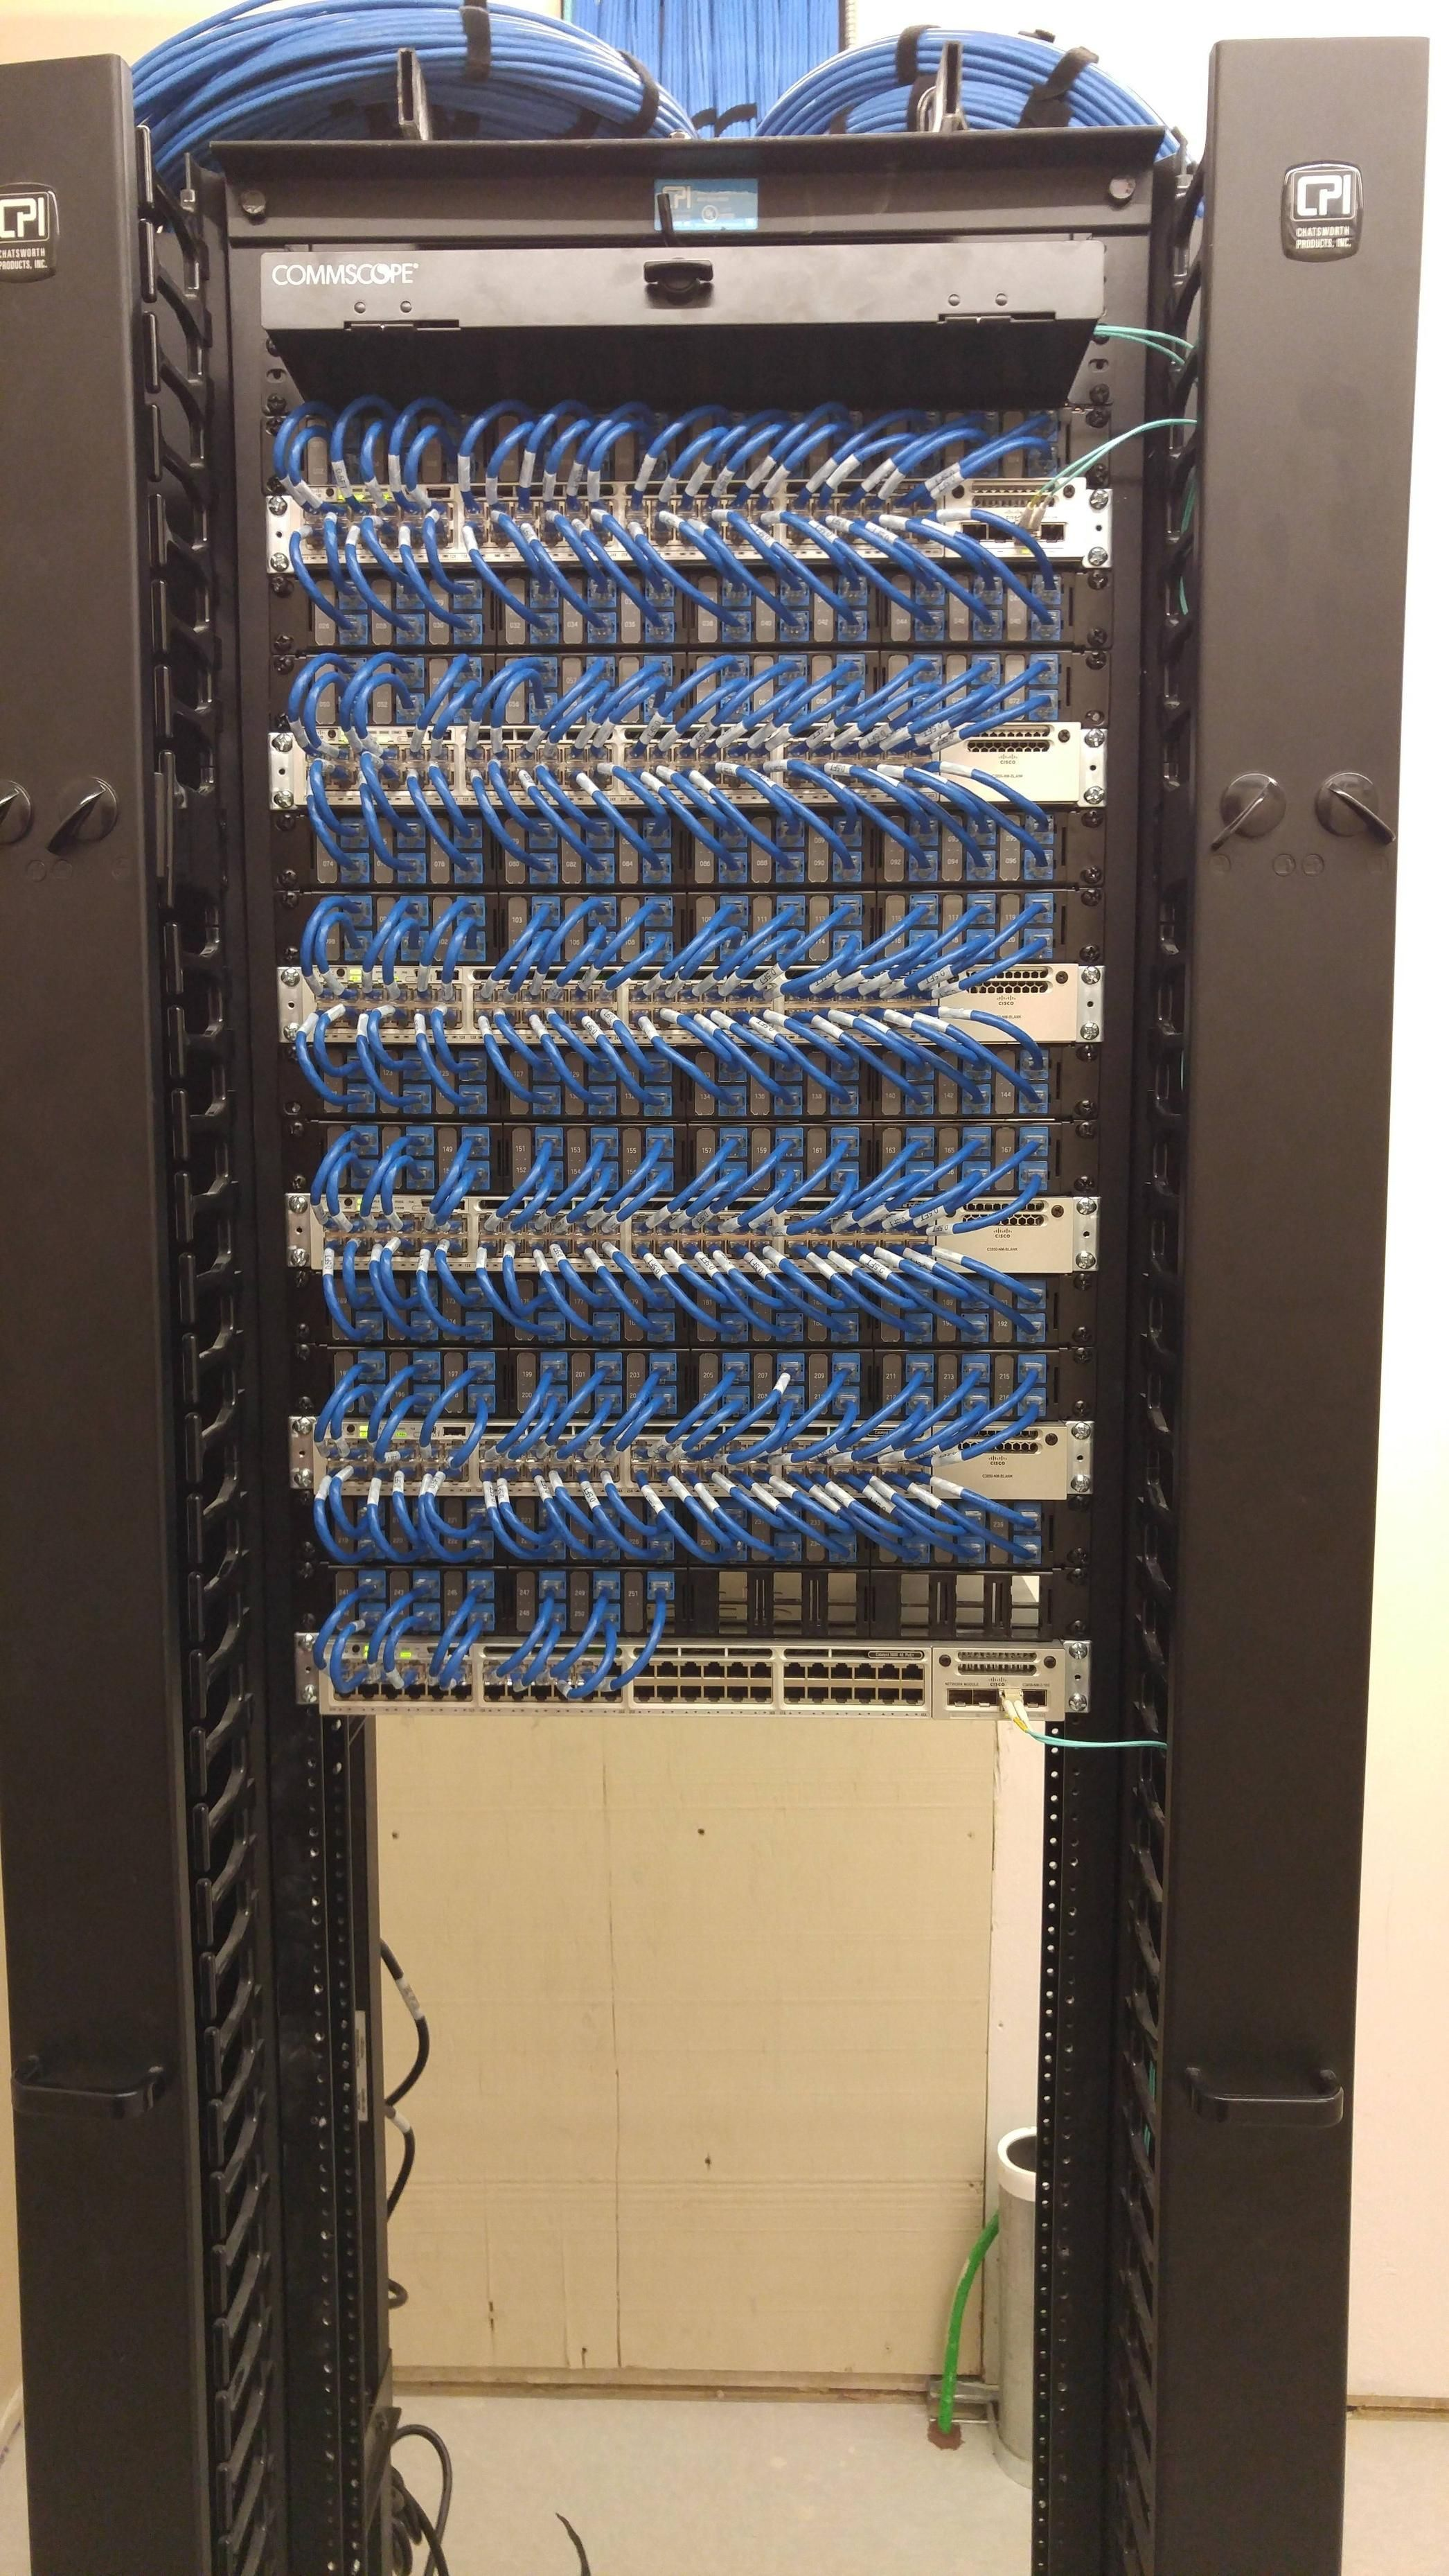 new idf closets network rack it network network cable server cabinet structured [ 2092 x 3718 Pixel ]